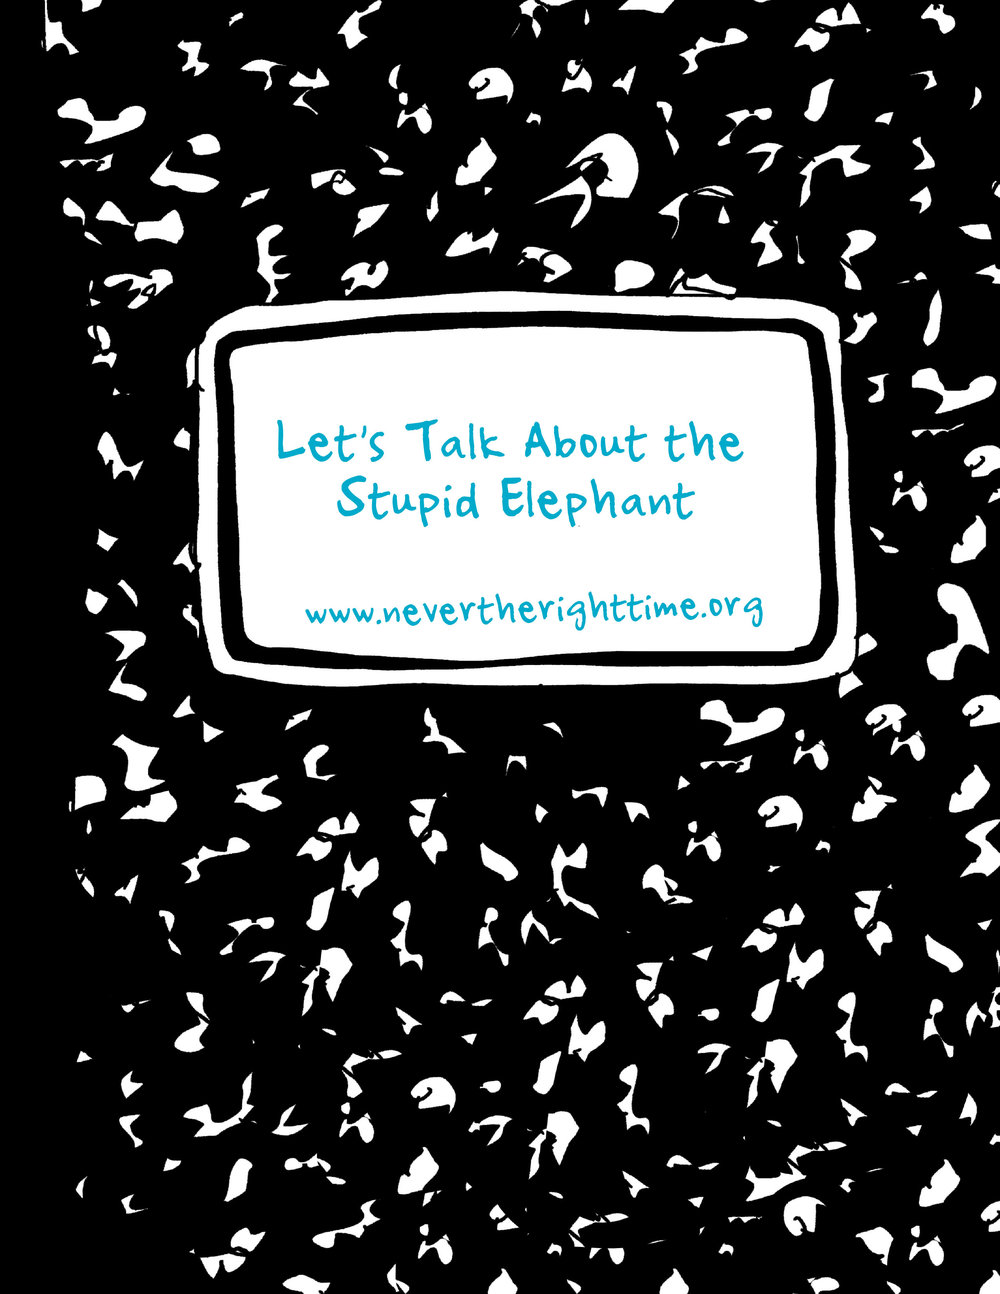 Let's Talk About the Stupid Elephant -